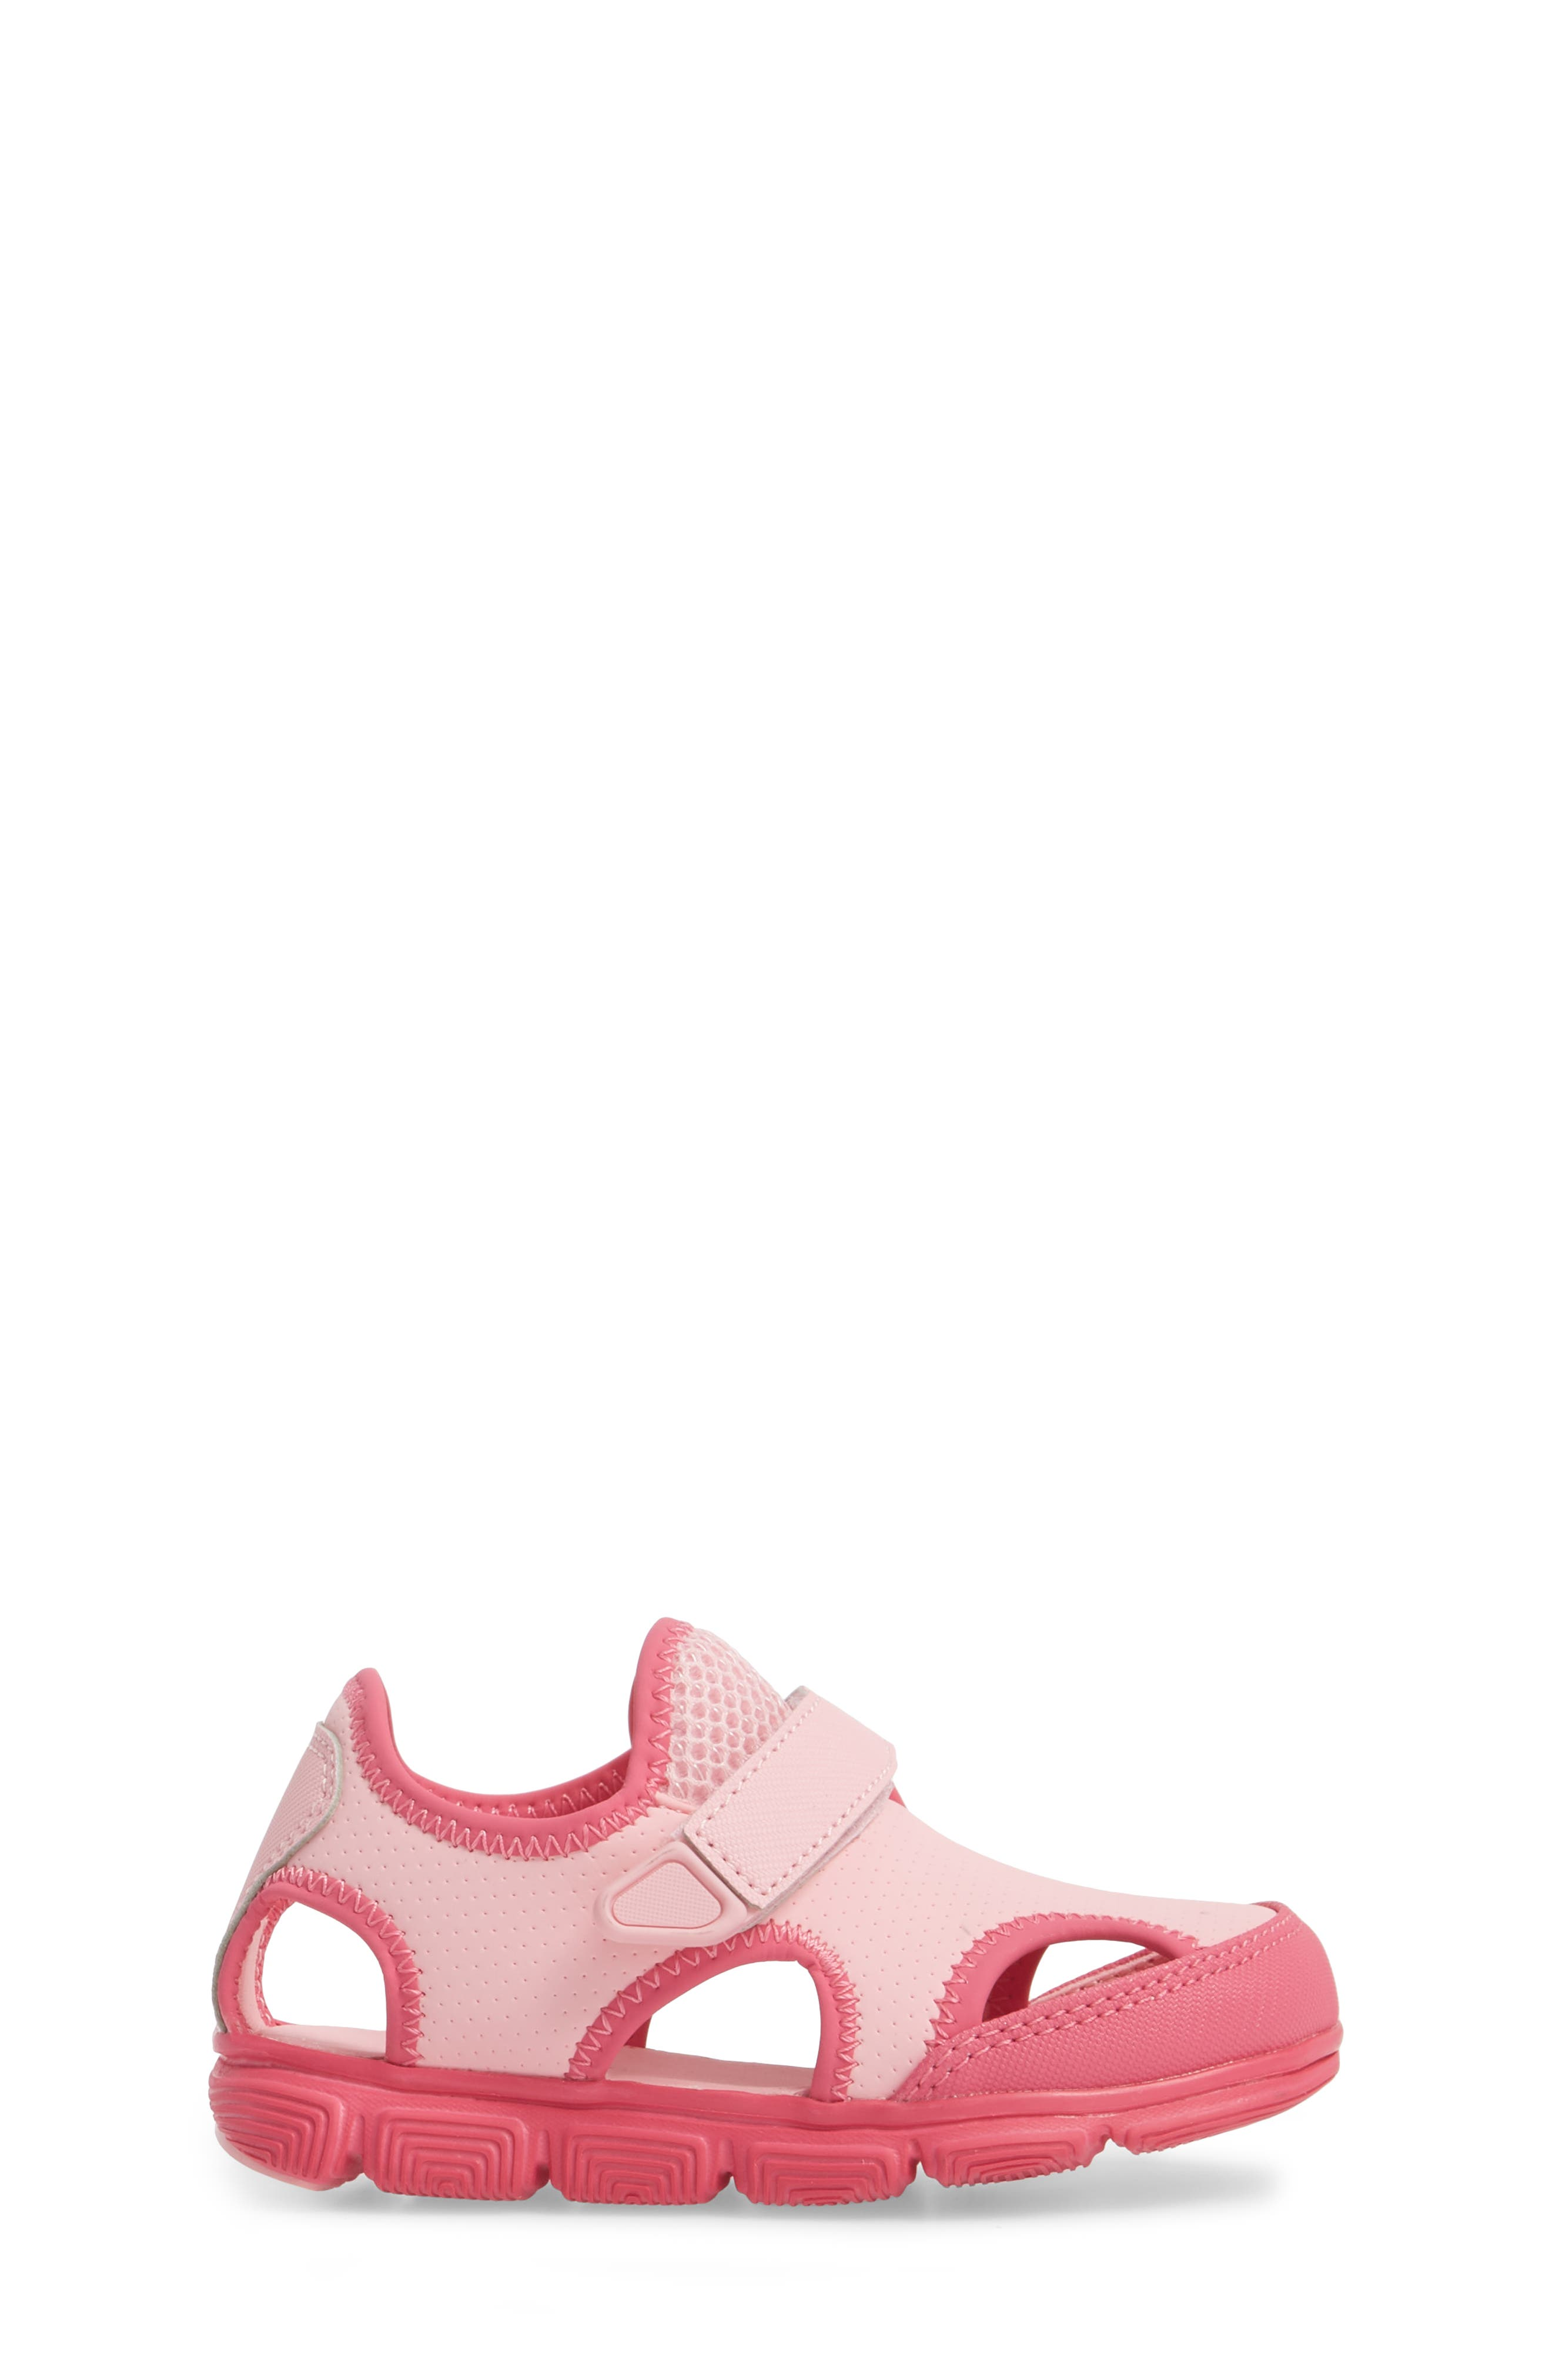 Sophie Water Sandal,                             Alternate thumbnail 3, color,                             Pink/ Dark Pink